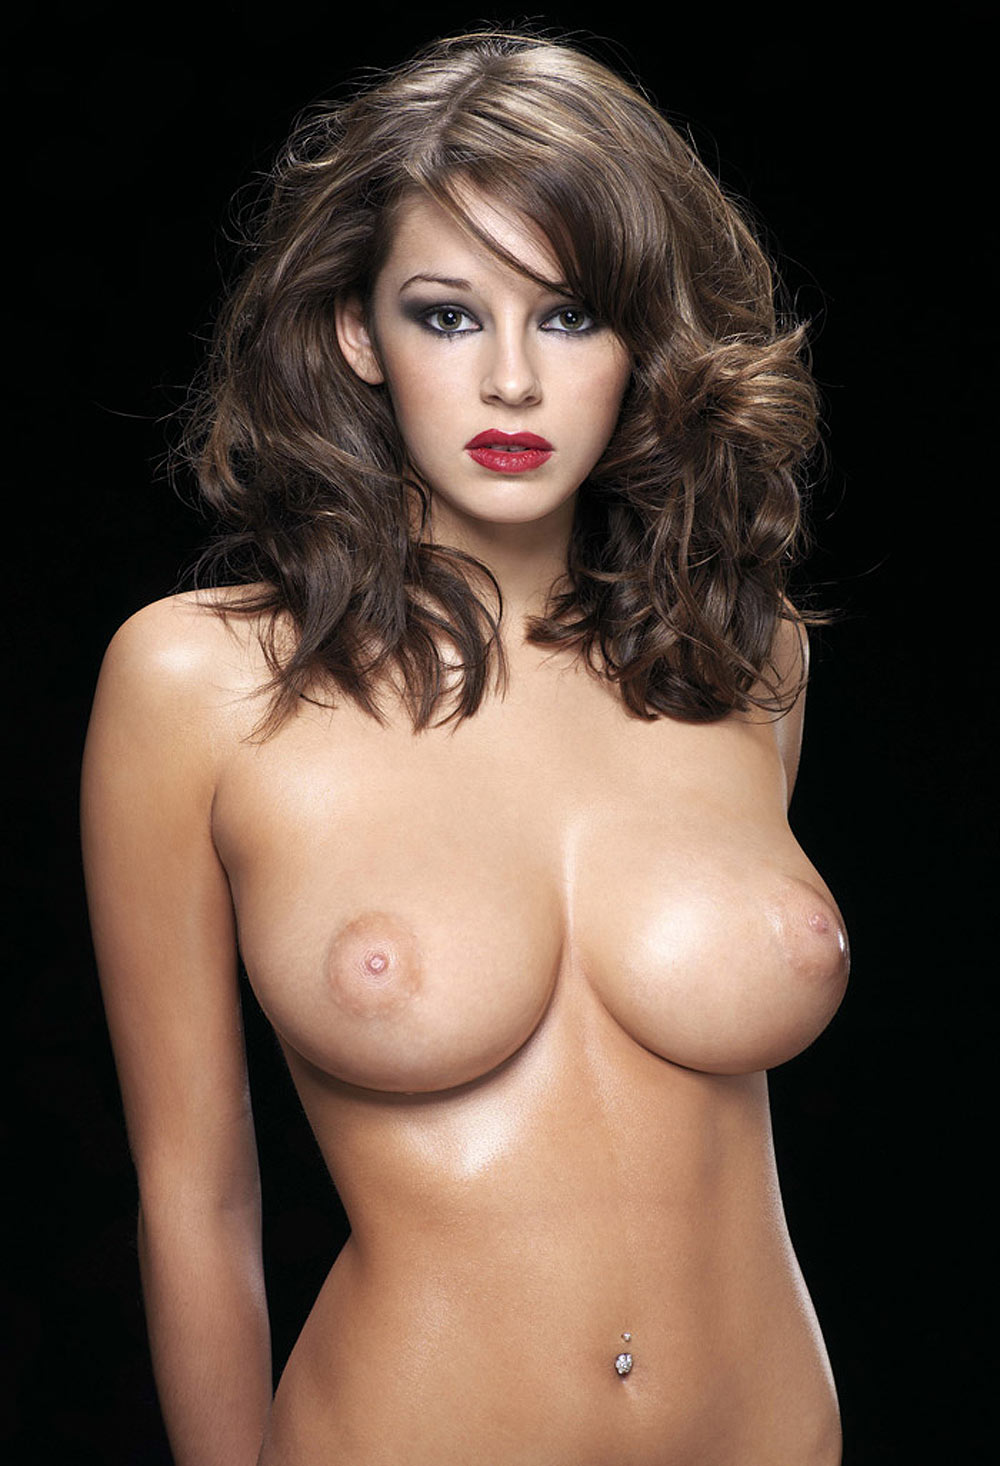 Opinion Keeley hazell nude fakes are not